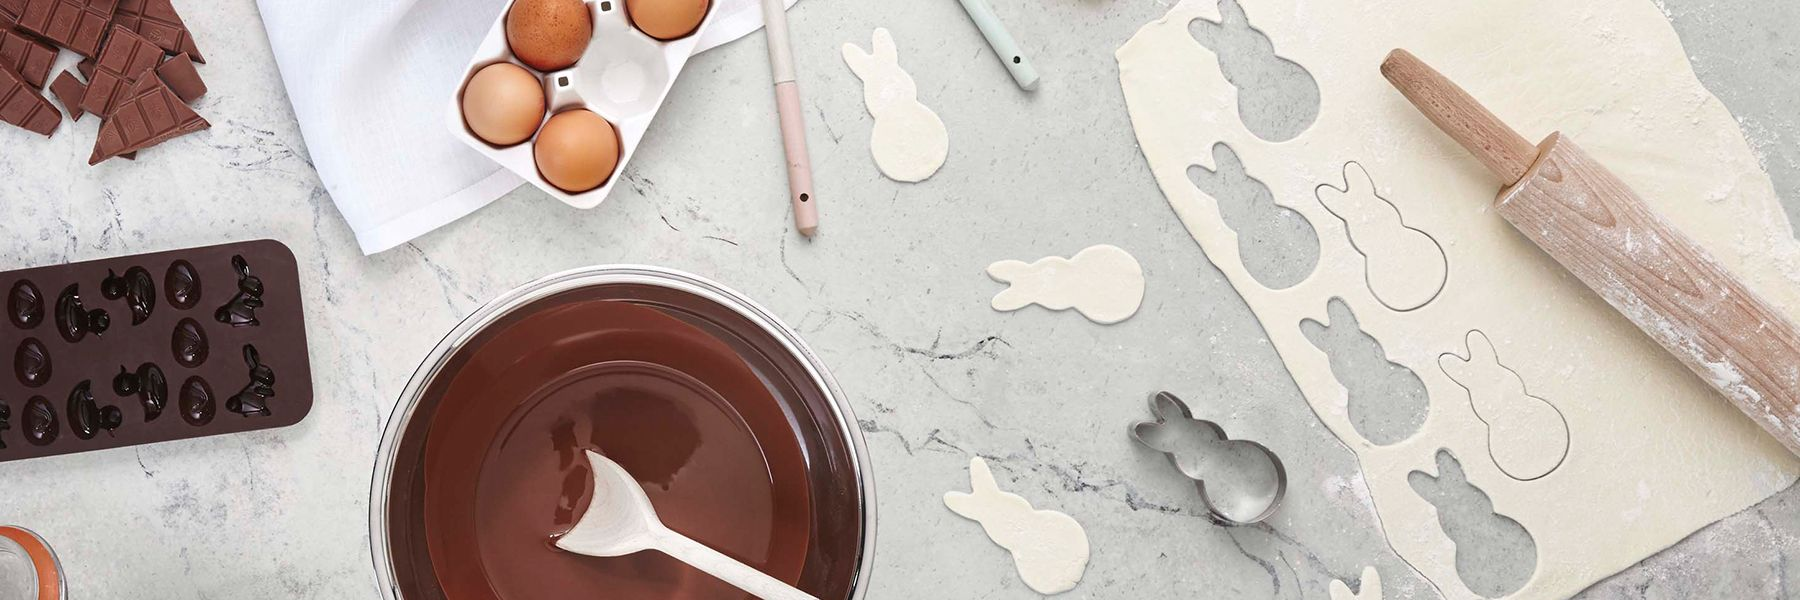 icing, piping and decorating essentials